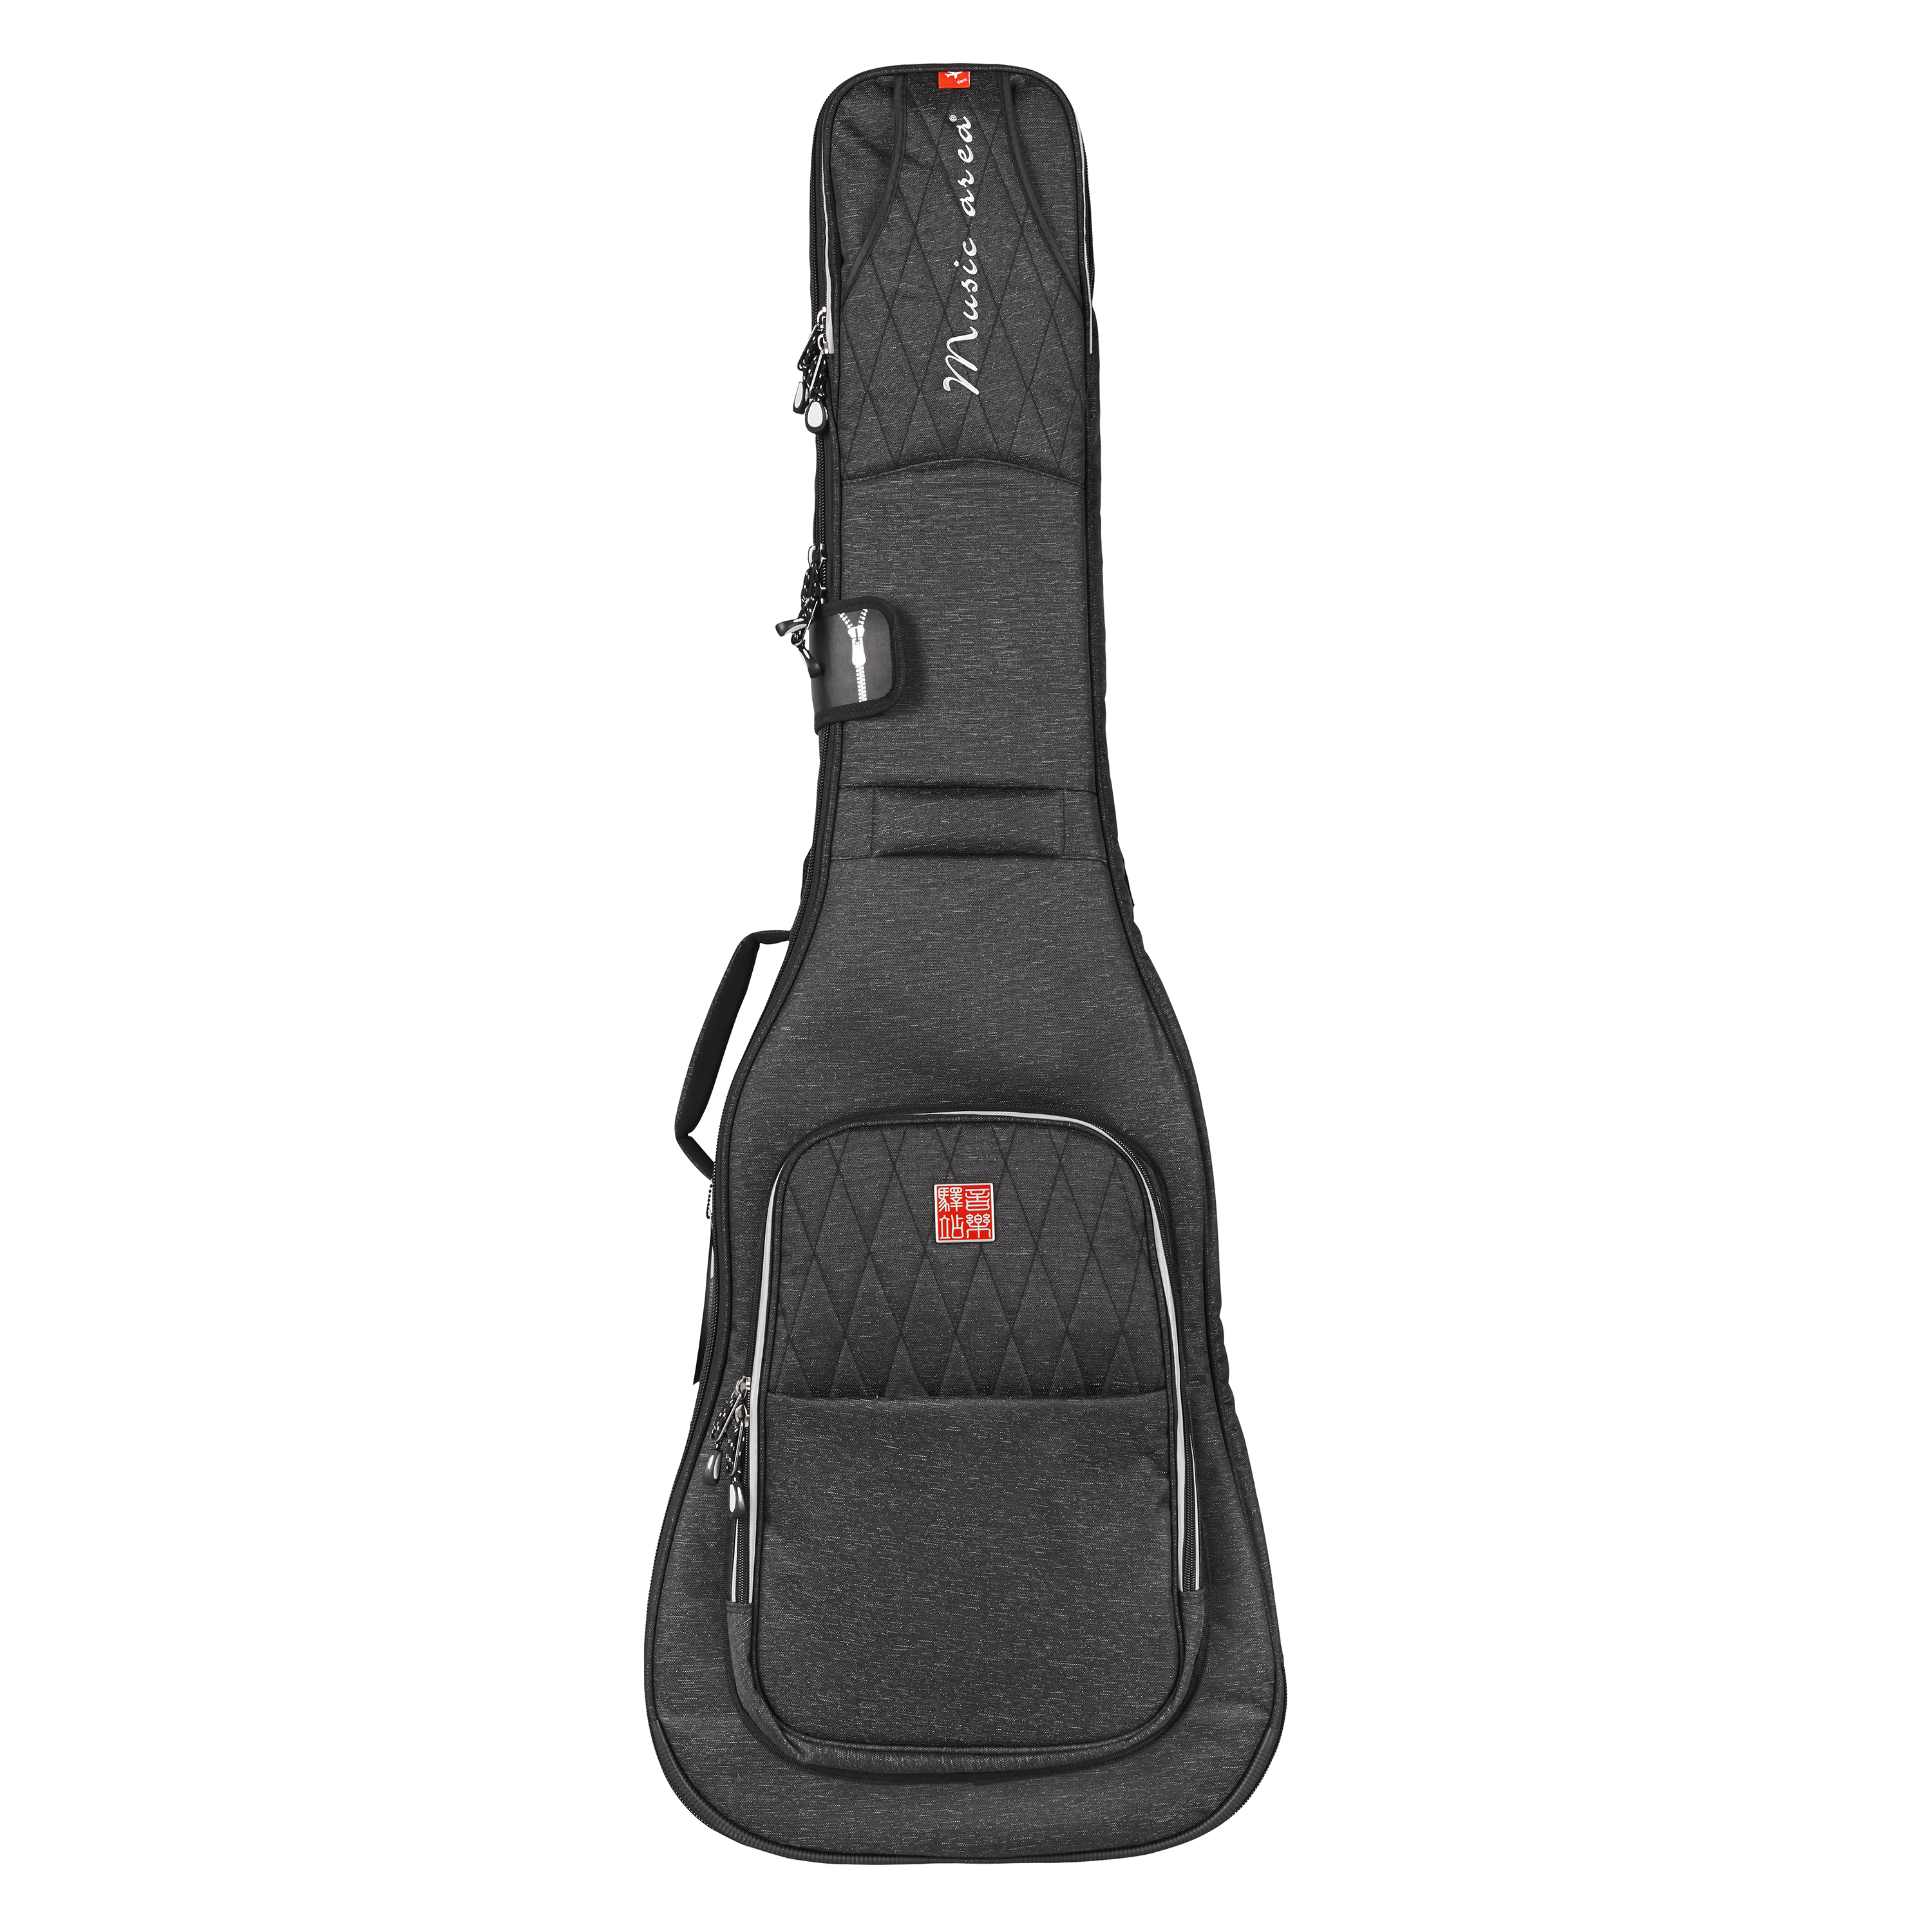 Music Area High-end Electric Bass Gig Bag 900D Polyester Black Soft Bass Case TANG30 EB Waterproof 30mm Cushion 12mm waterproof soprano concert ukulele bag case backpack 23 24 26 inch ukelele beige mini guitar accessories gig pu leather